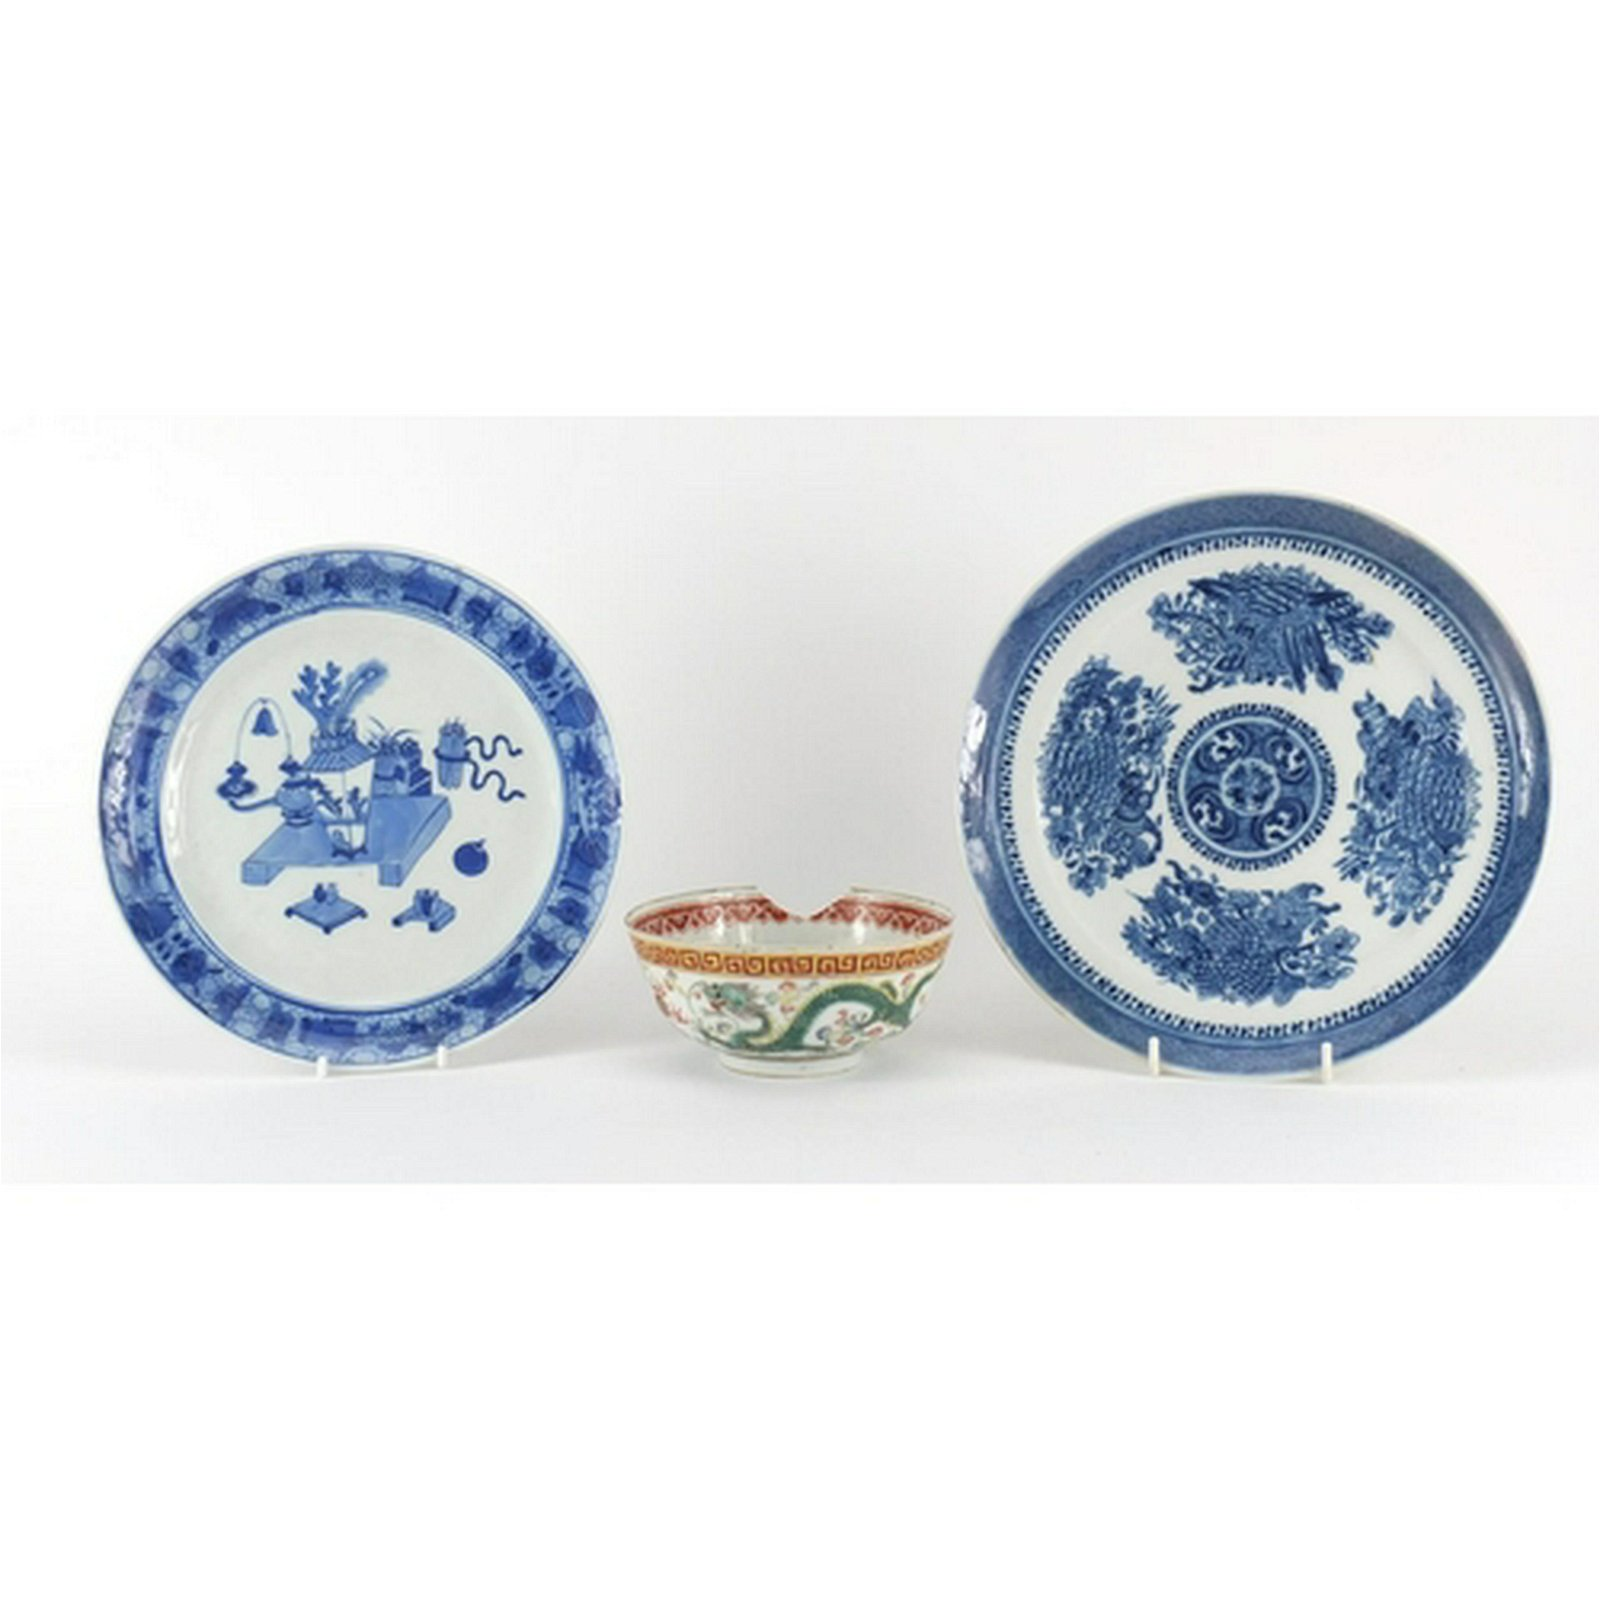 Chinese porcelain comprising two blue and white plates